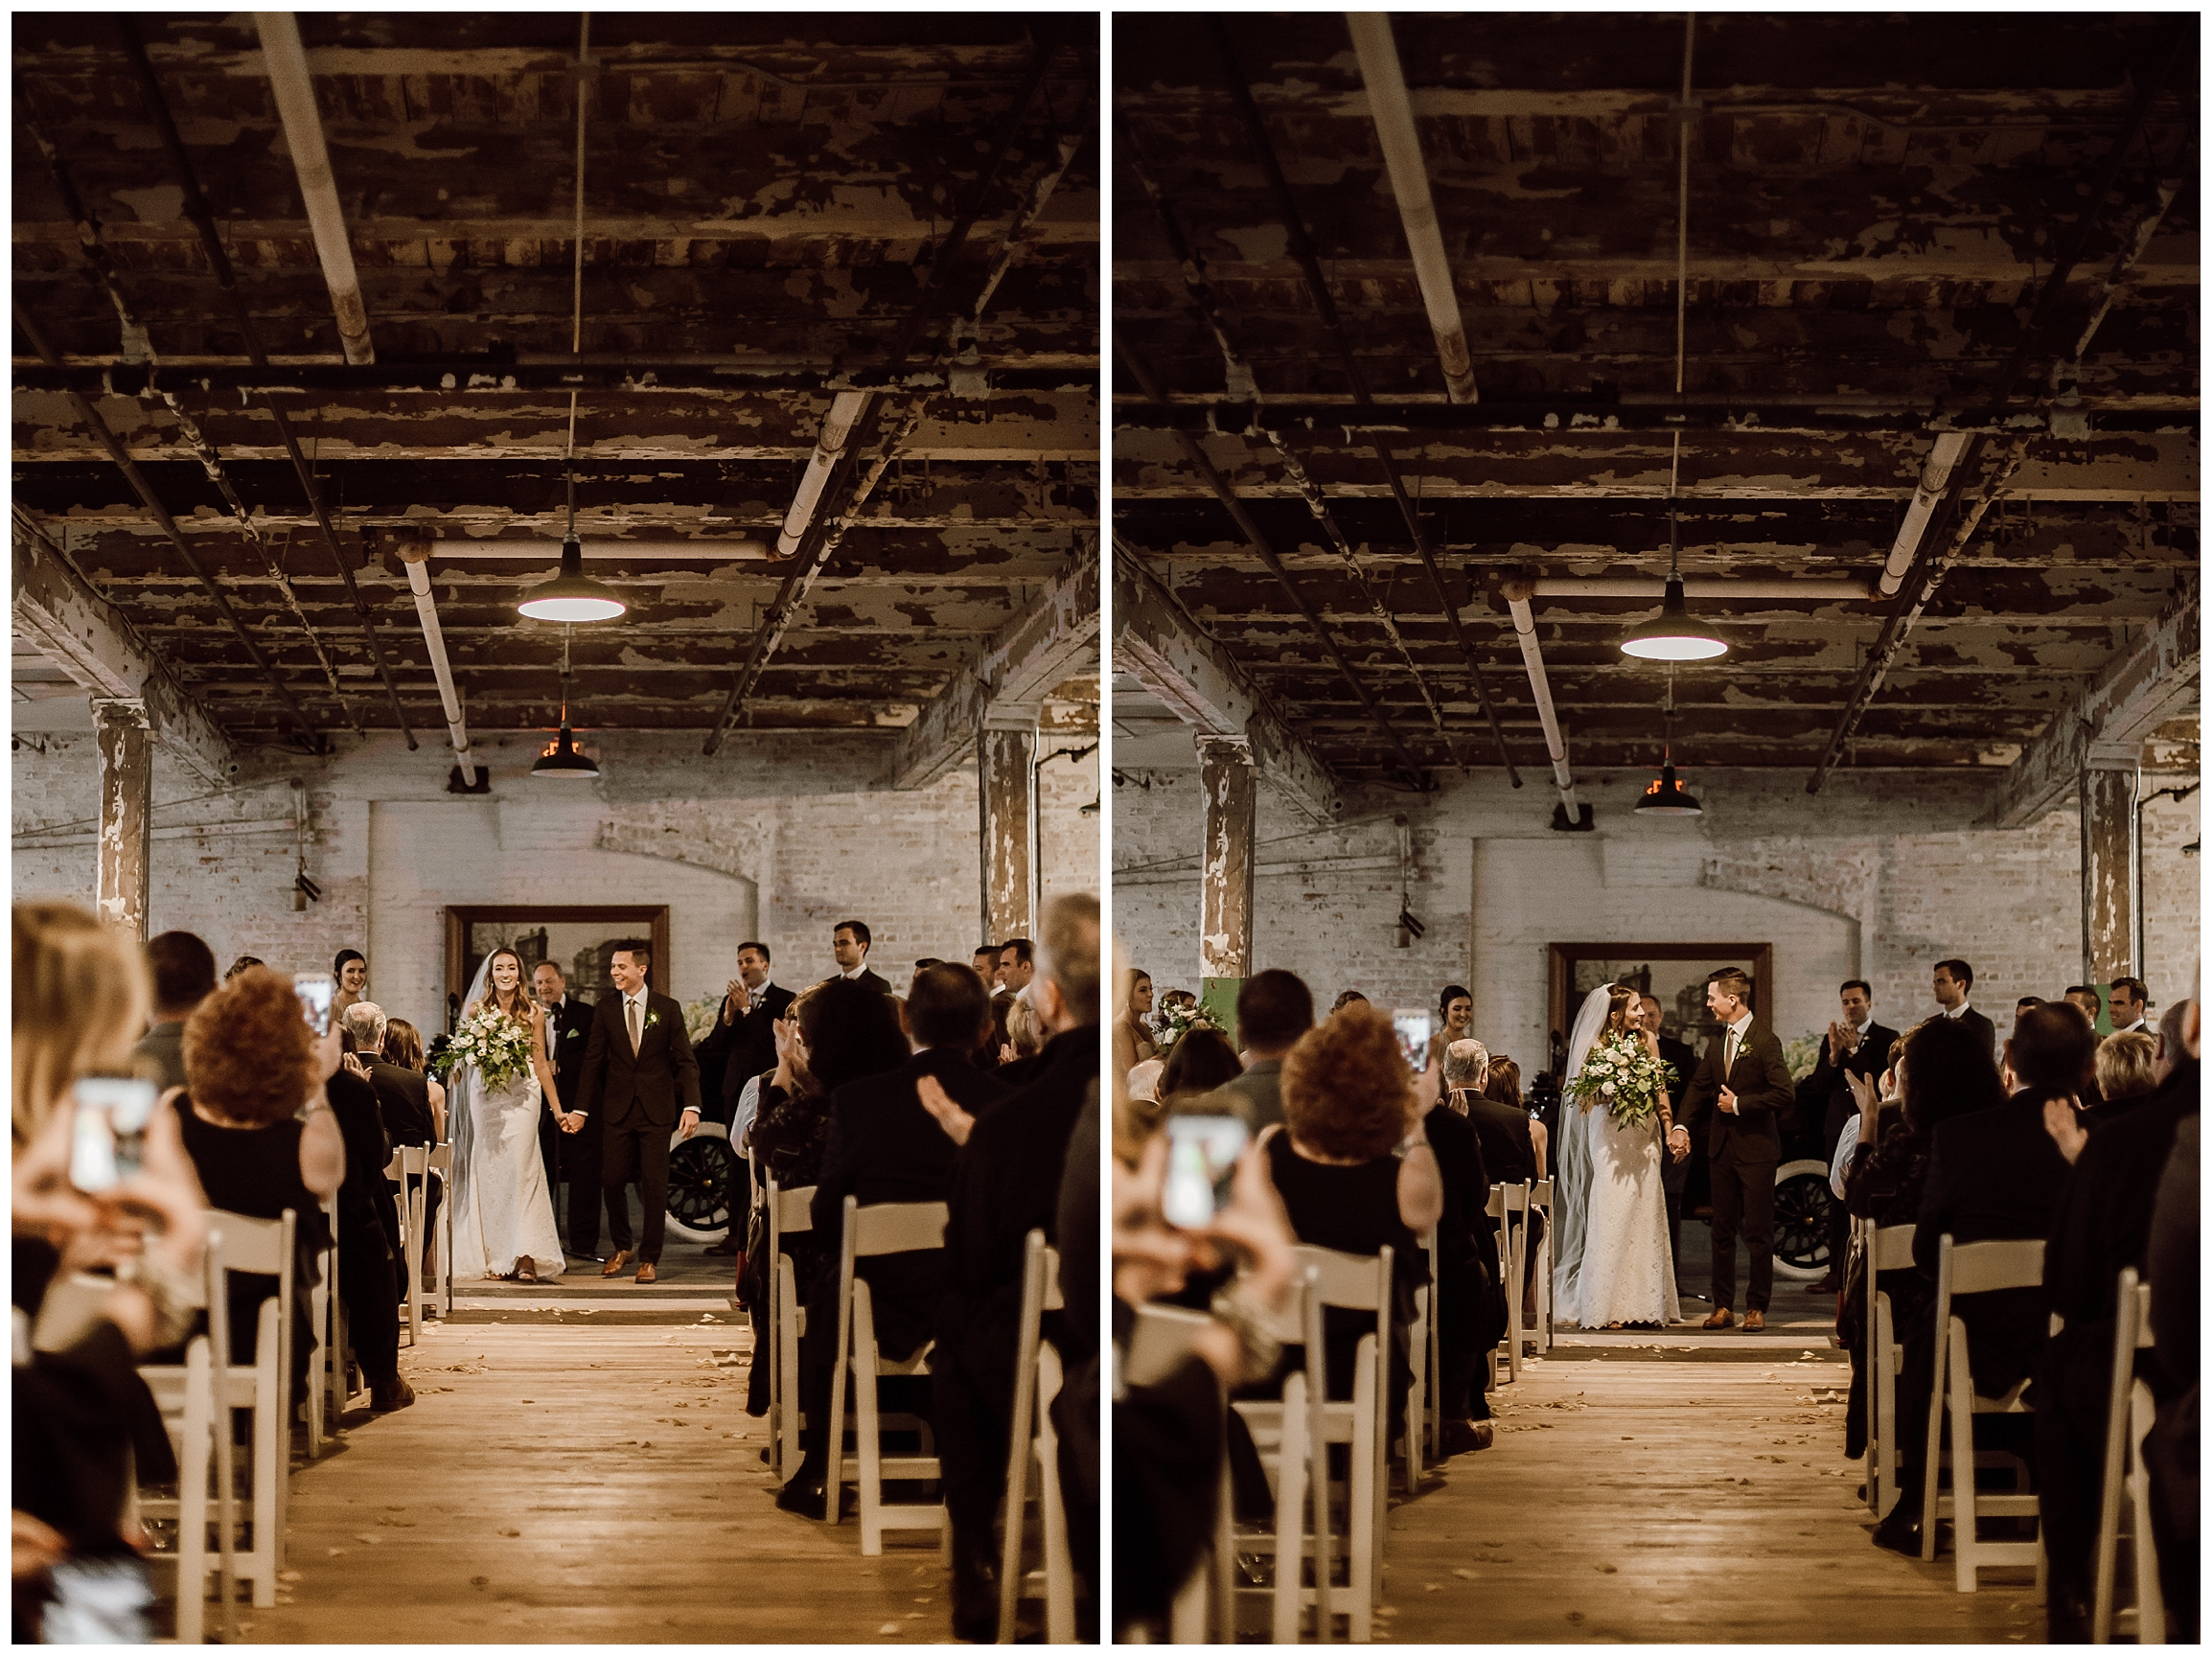 Katie_Vonasek_Photography_Ford_Piquette_Plant_Wedding_Detroit77.JPG